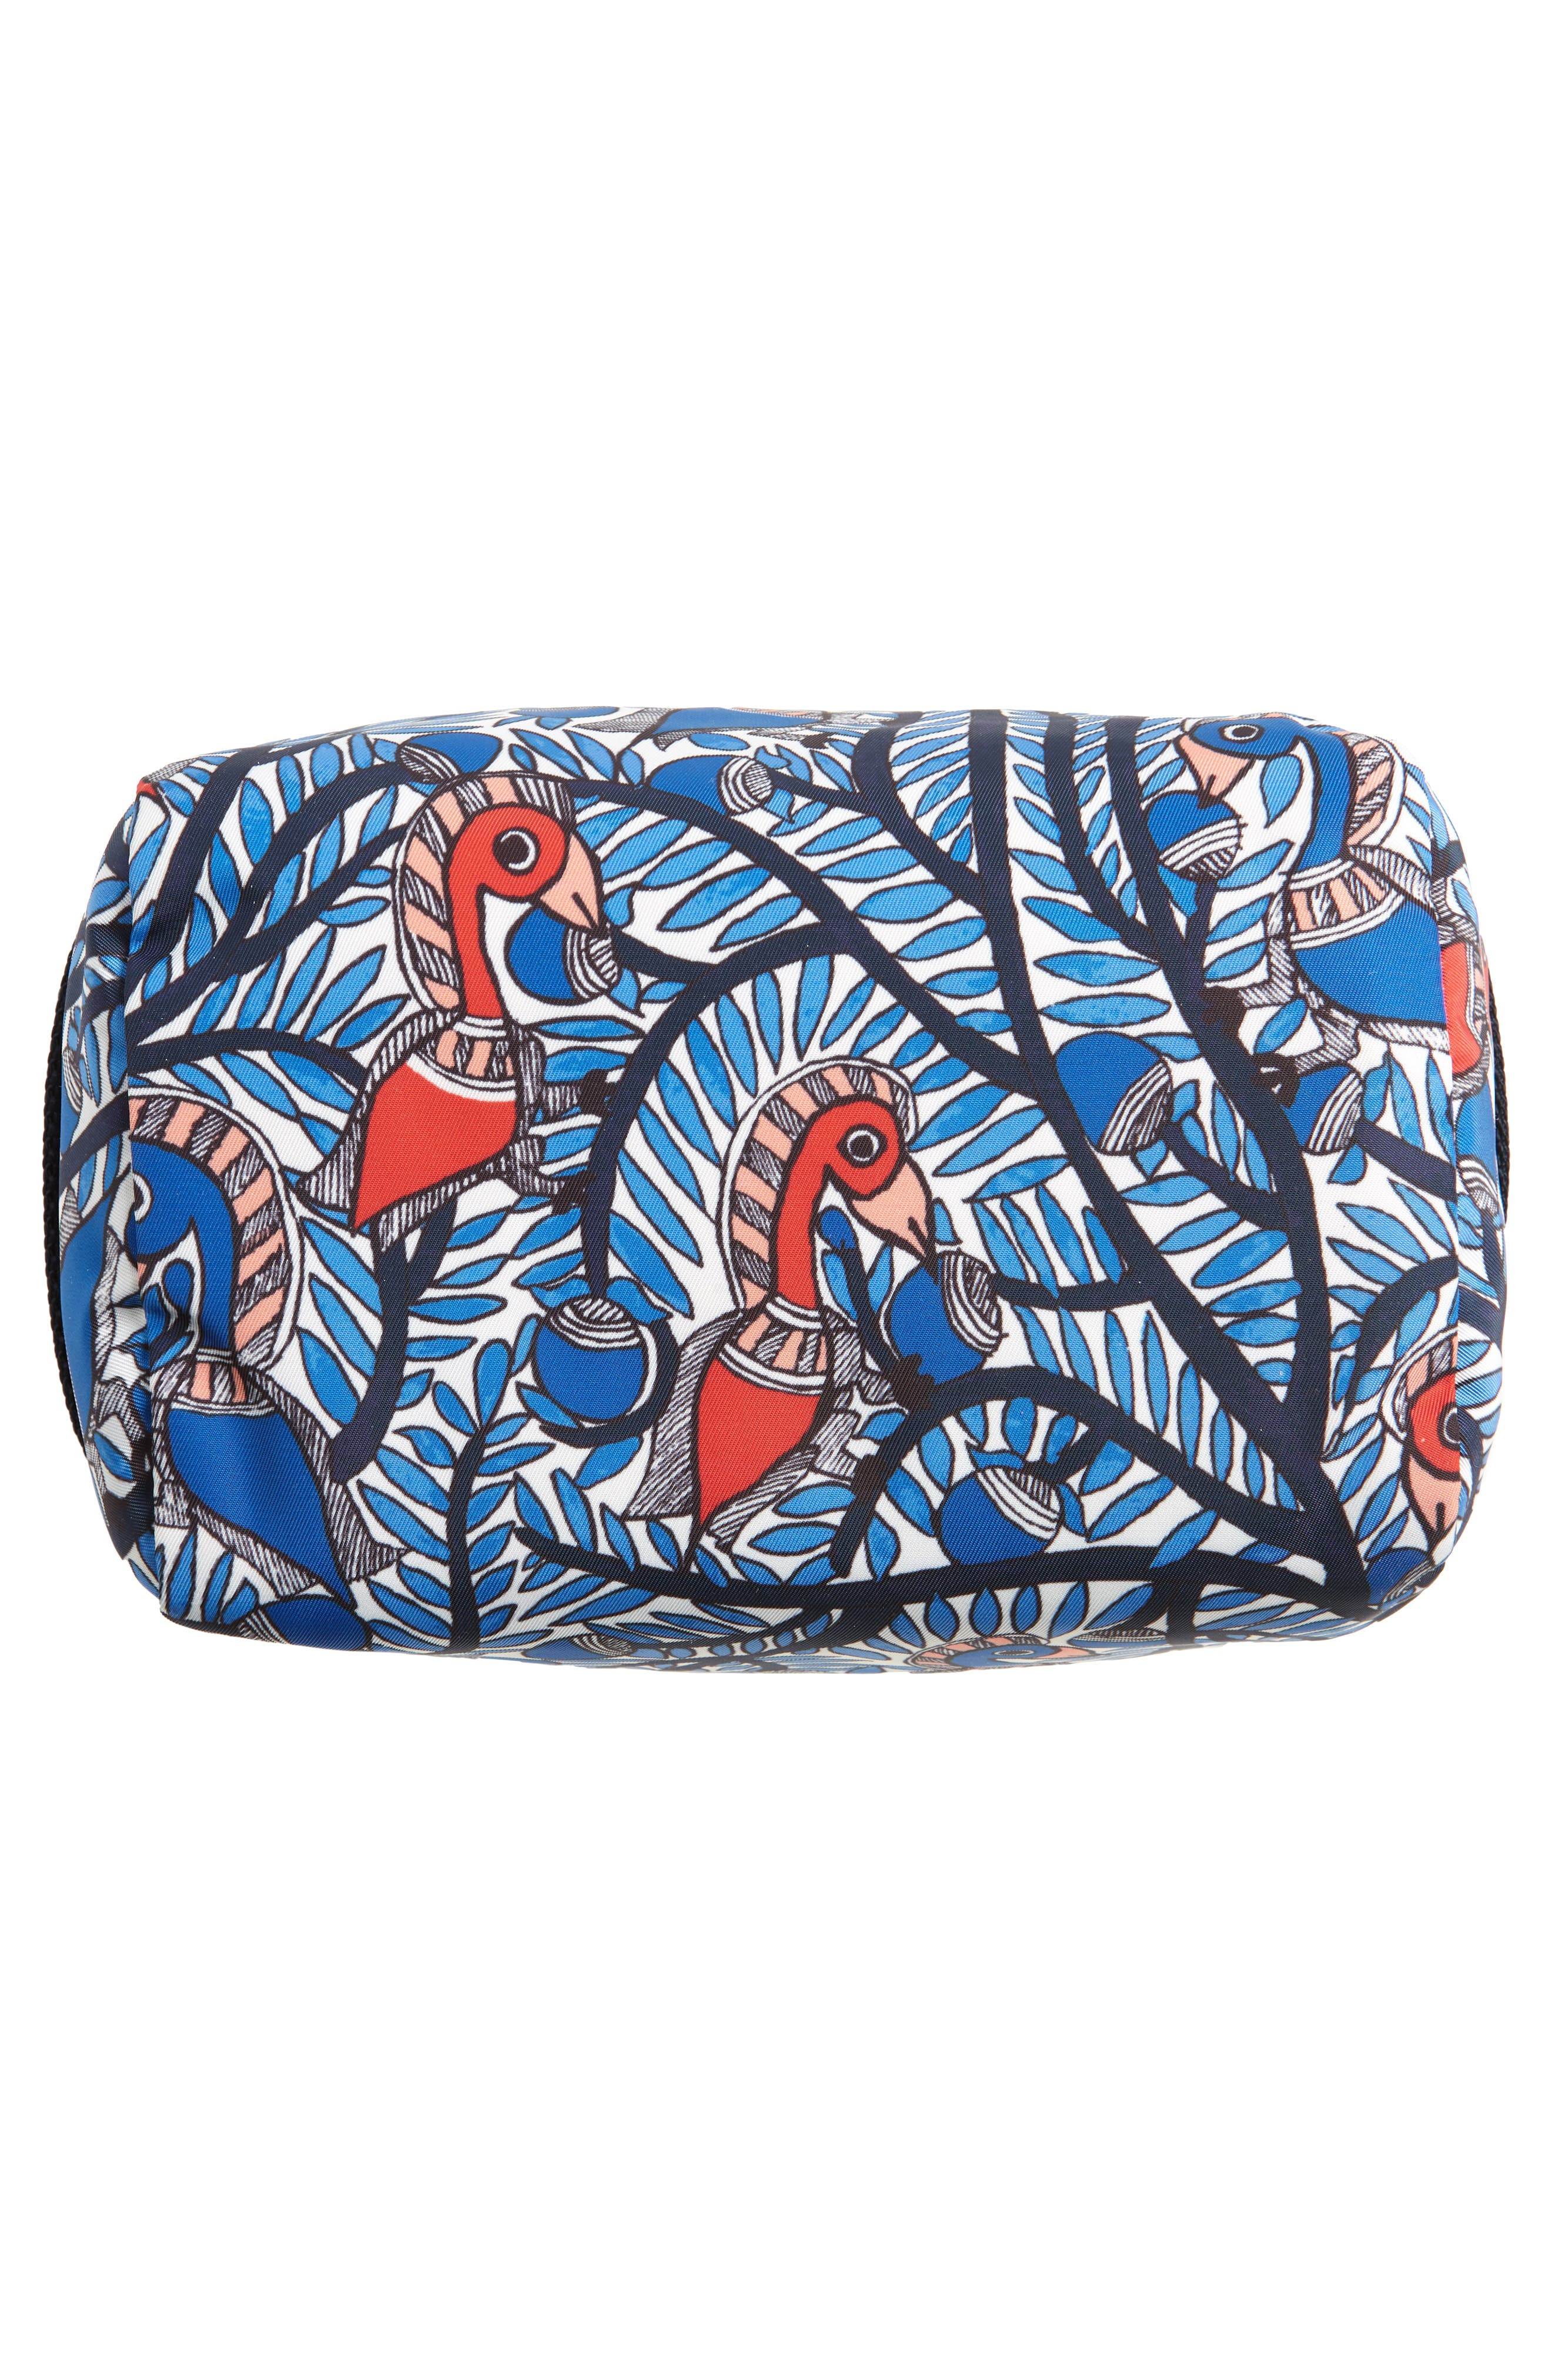 TORY BURCH,                             Medium Tilda Print Cosmetics Case,                             Alternate thumbnail 5, color,                             BLUE SOMETHING WILD